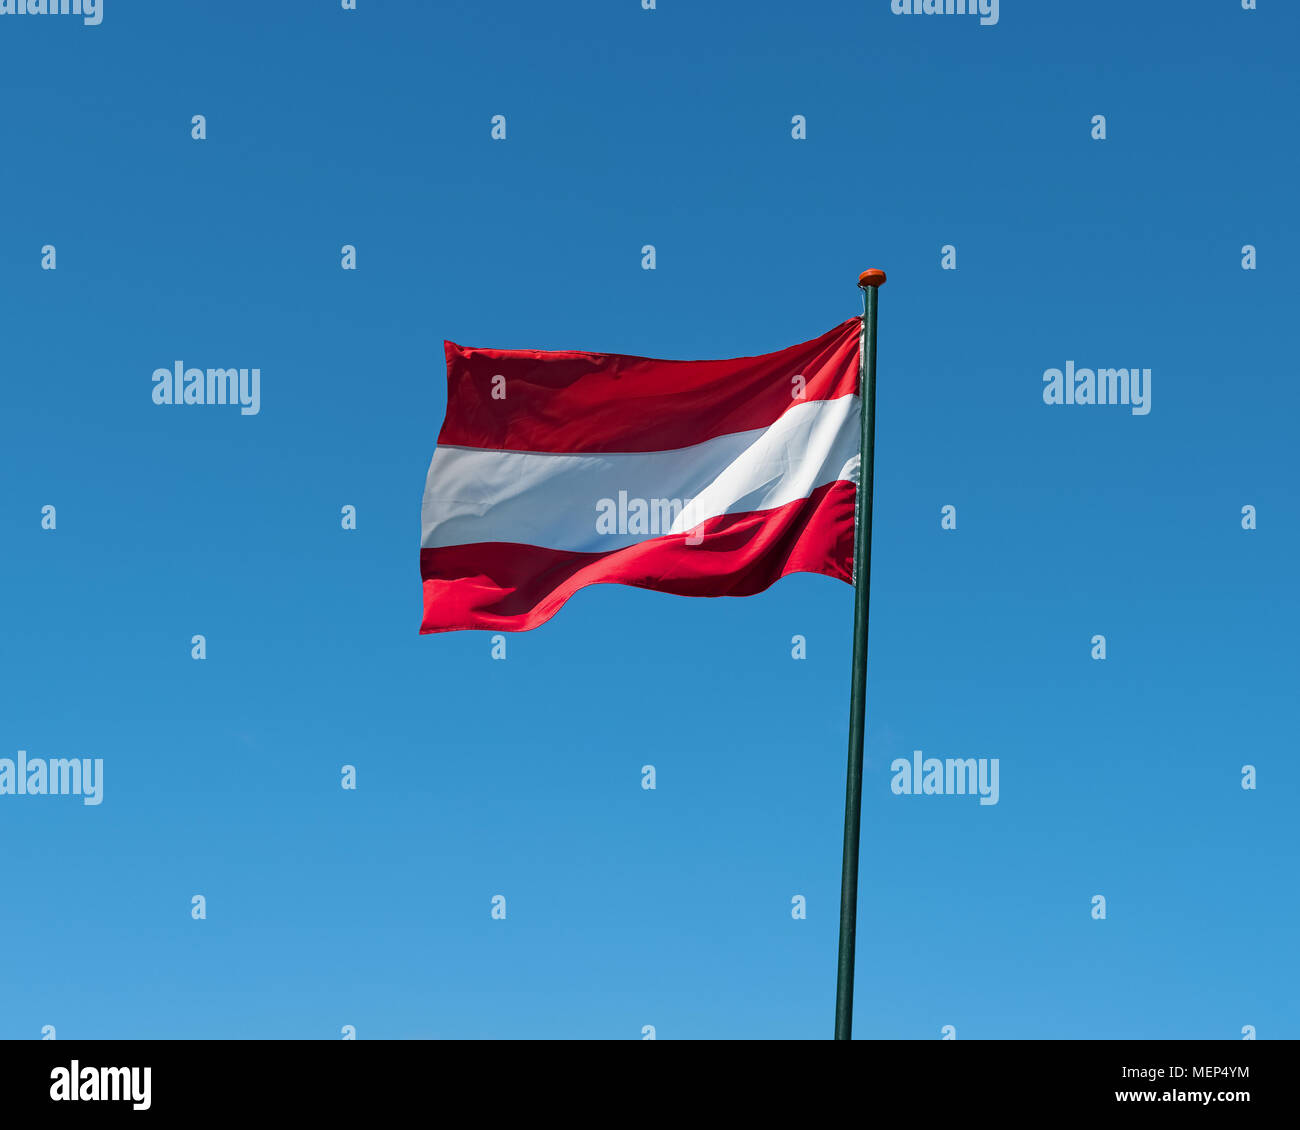 Flag of Austria on flagpole waving in the wind. Austrian national official flag on blue sky background. Patriotic symbol, banner - Stock Image